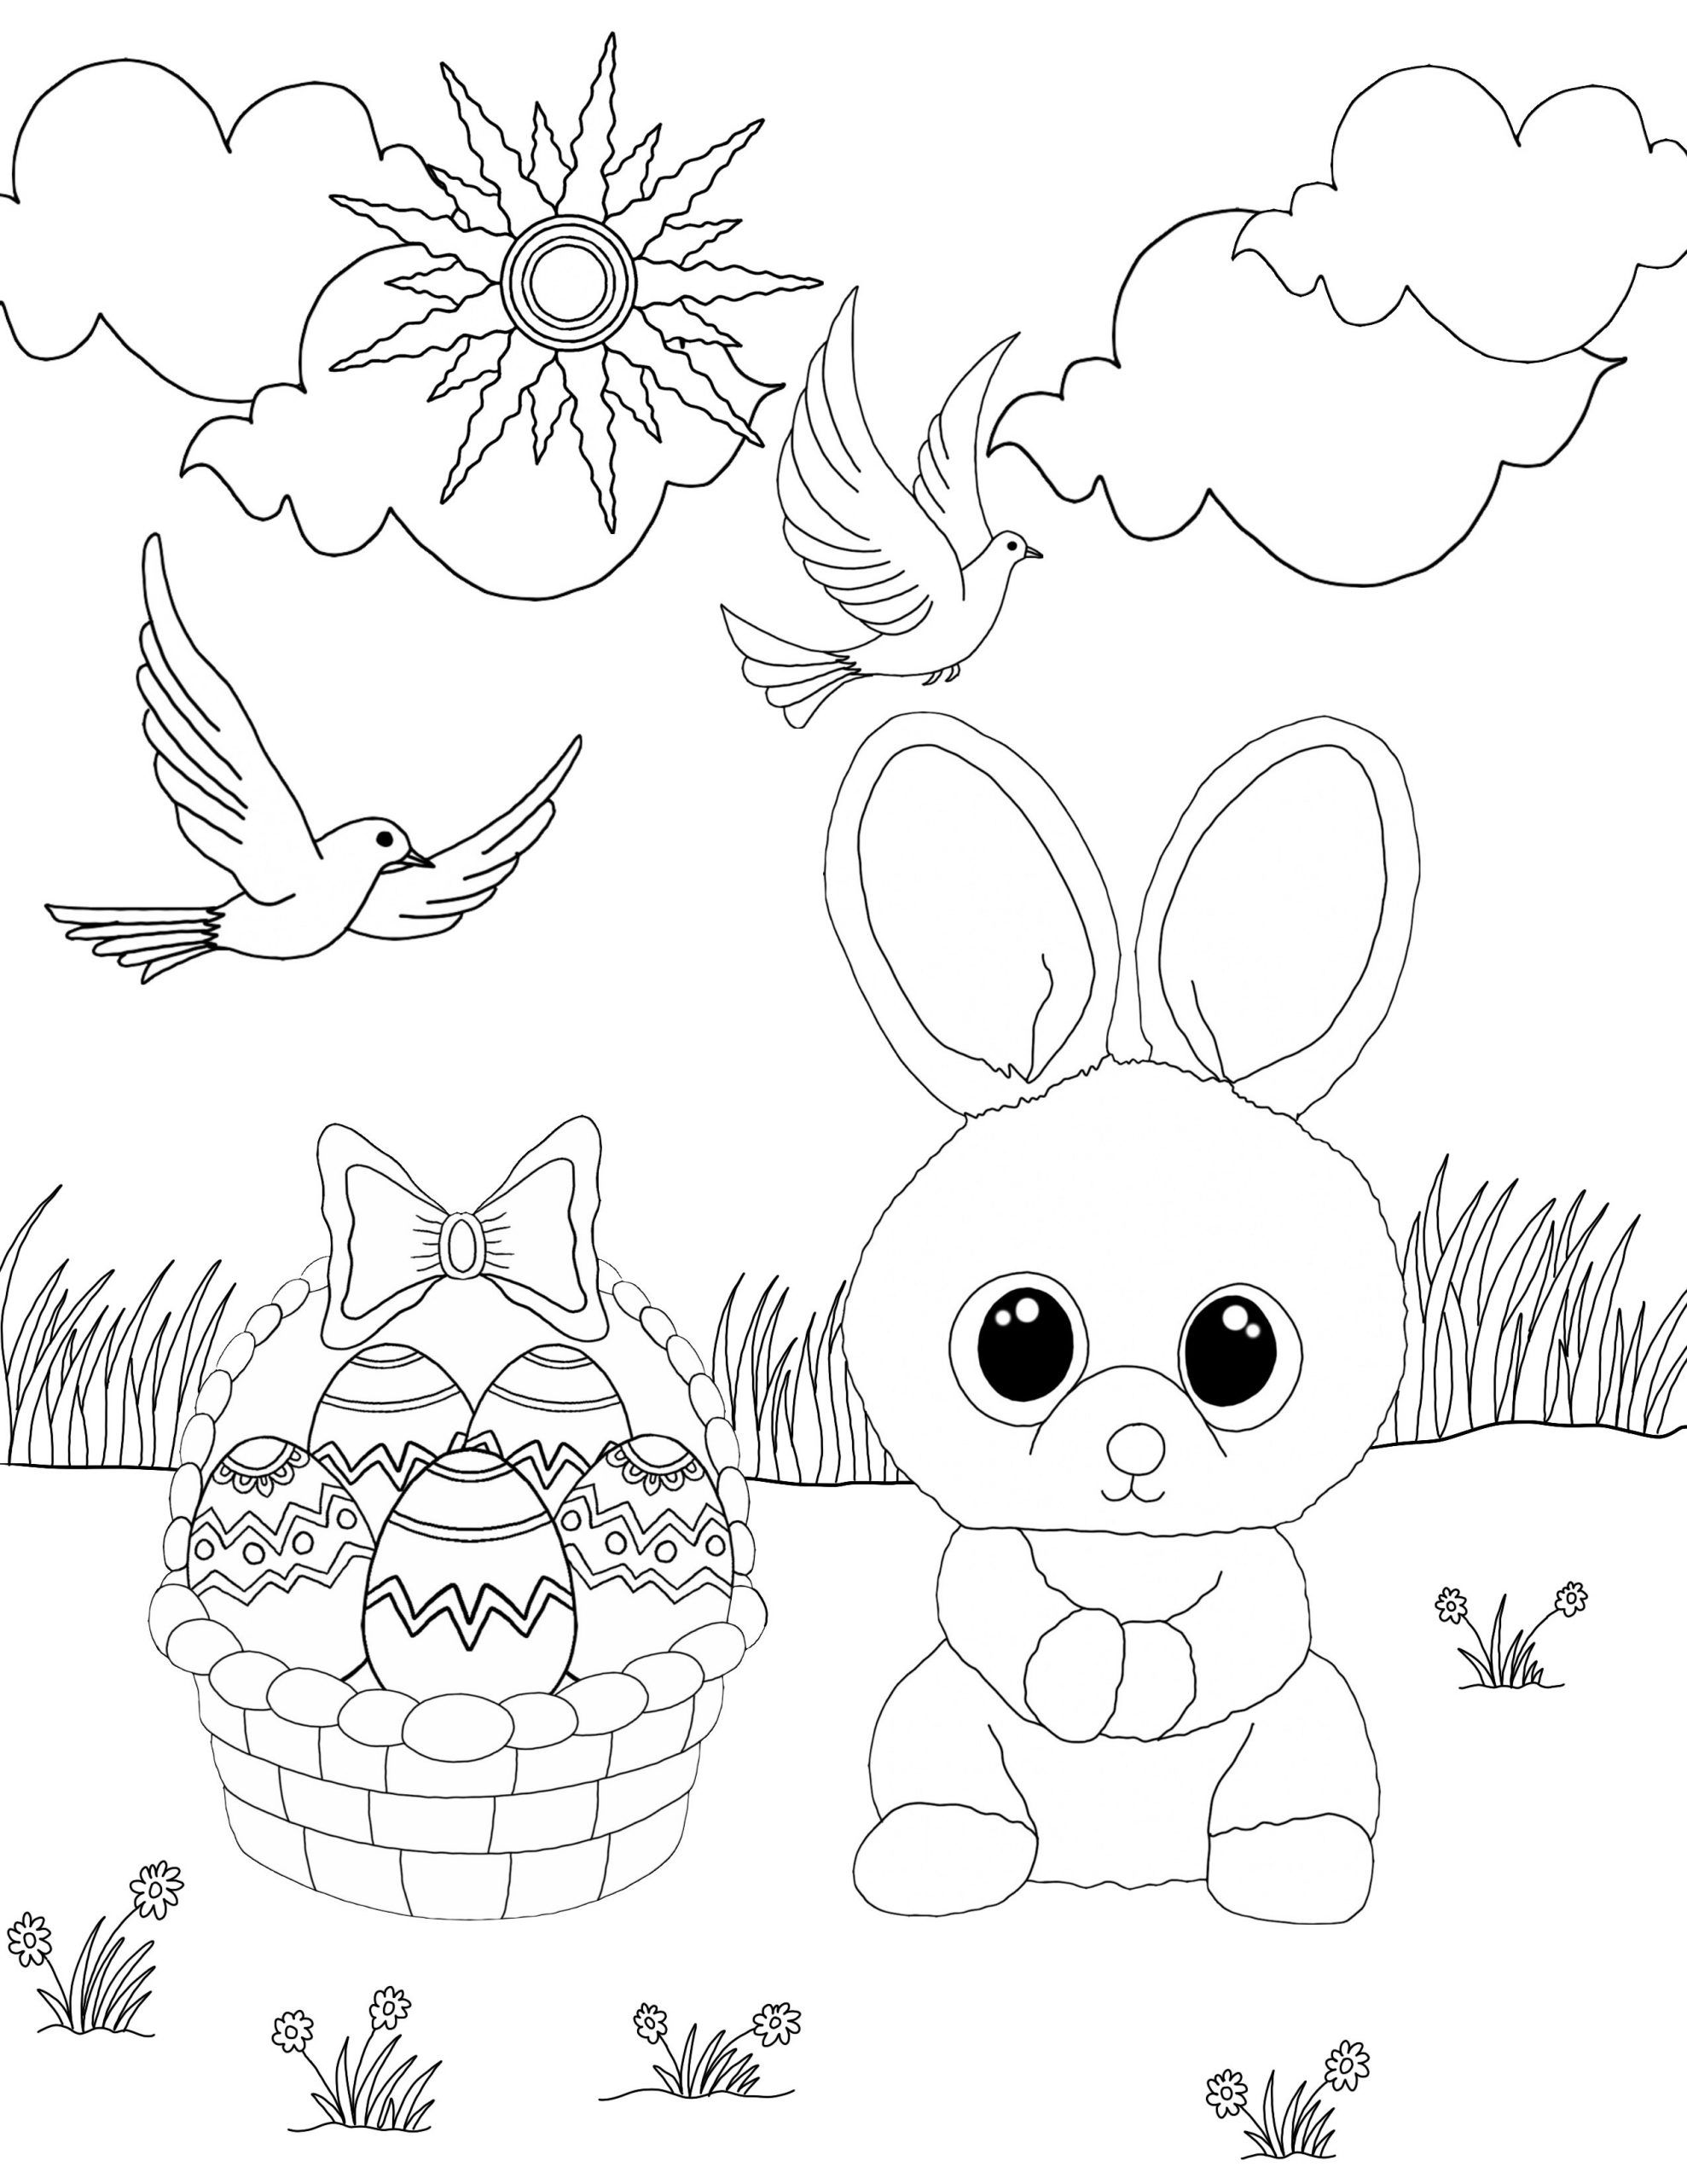 Baby Bunny Coloring Pages Rabbit Colouring Bugs Printable Easter Cute Color Page Lola Marvelous Of Bunnies Birthday Presents Eagles Cheetah Awesome Letter N